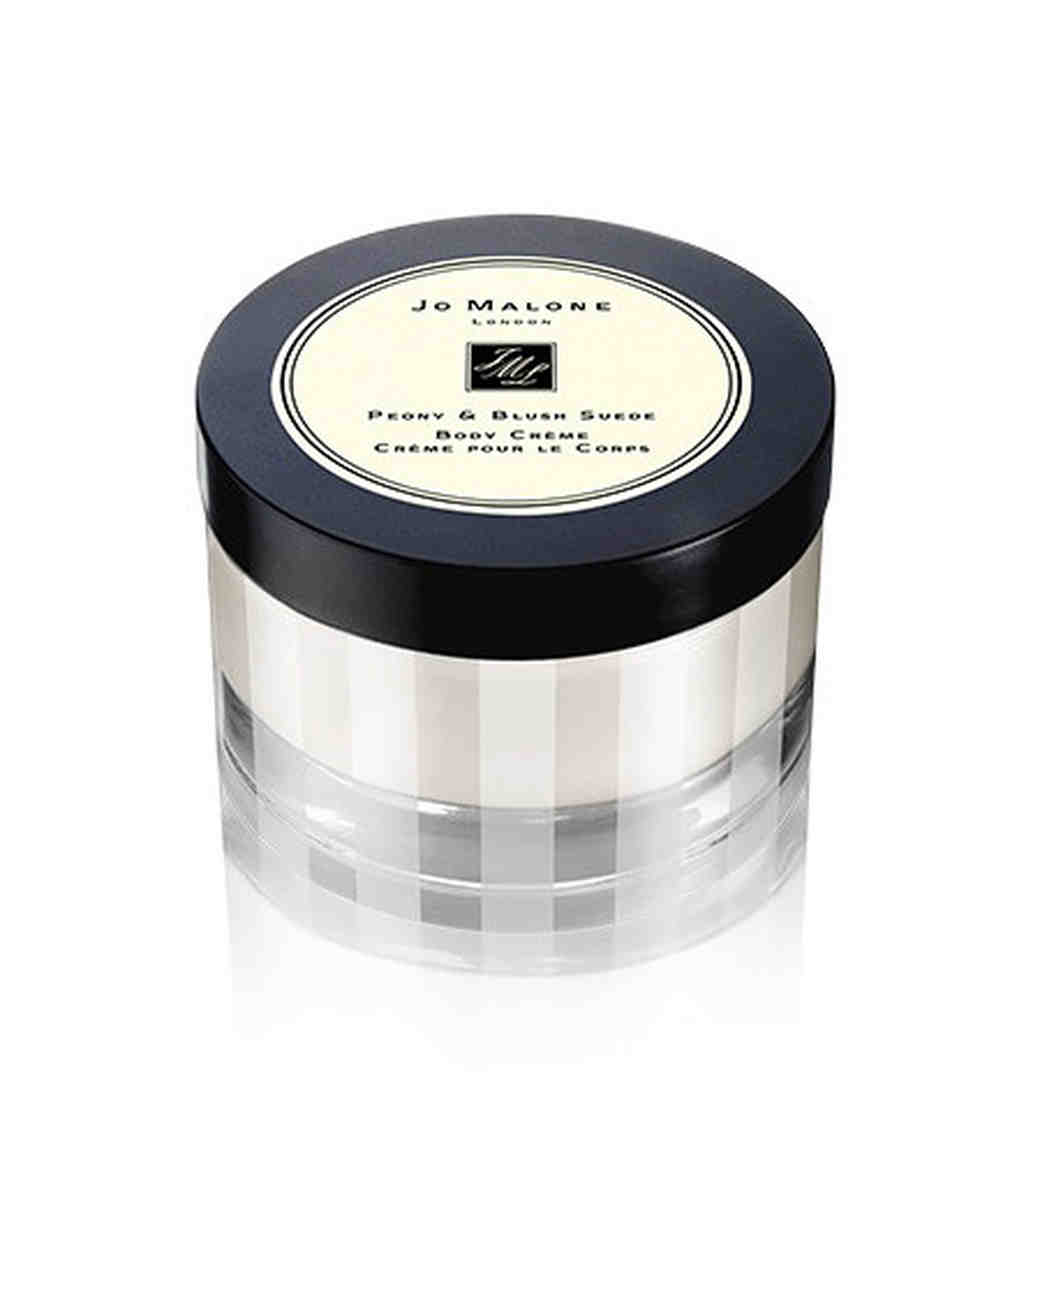 body cream jo malone peony blush